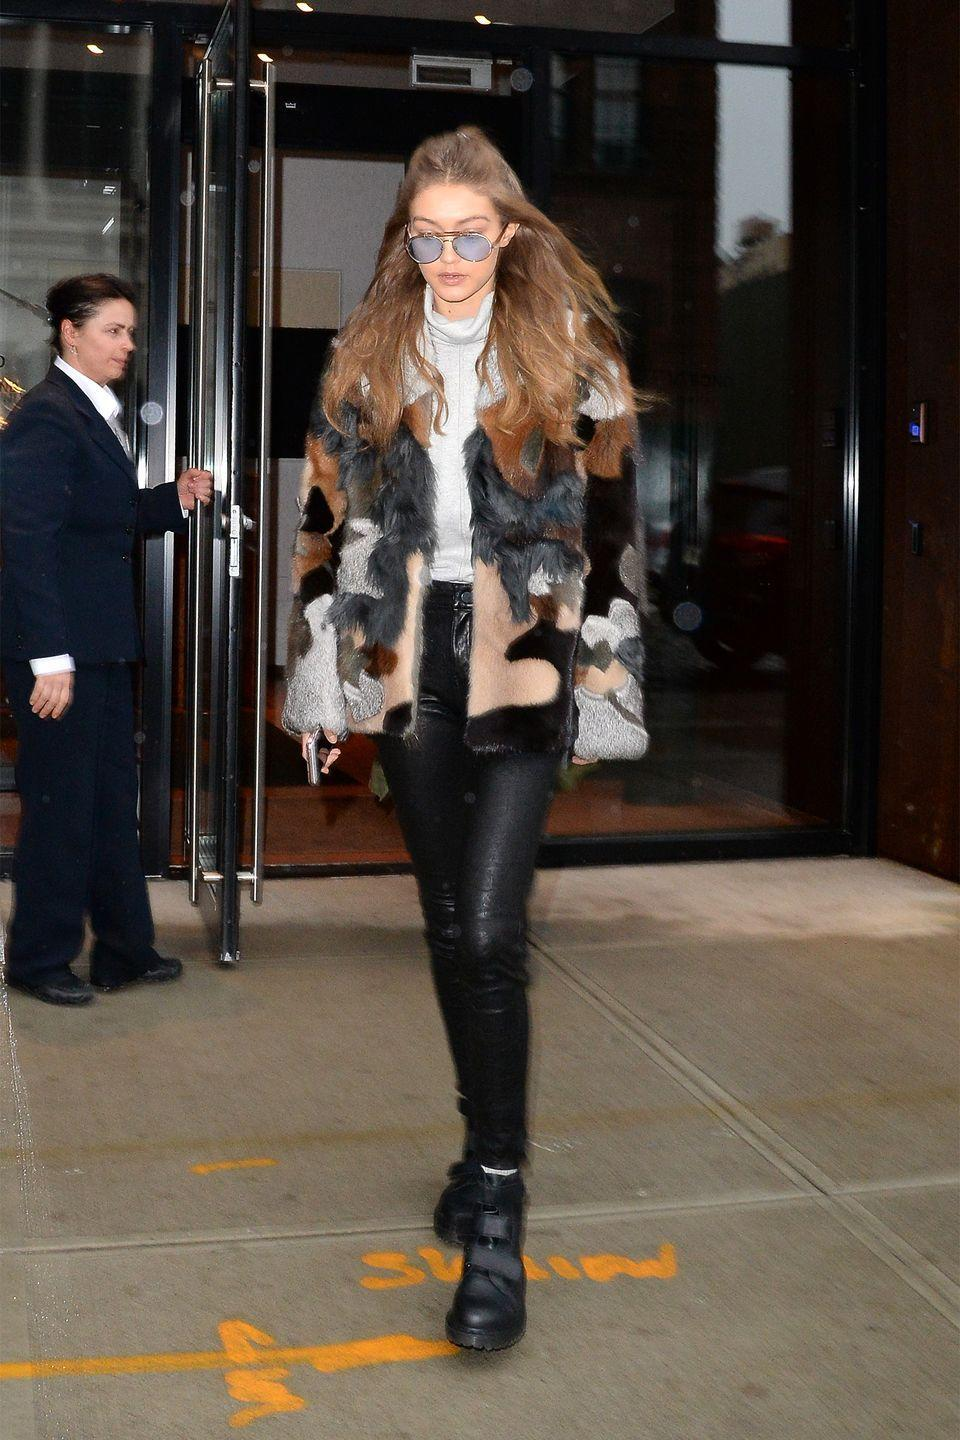 <p>In a patterned fur coat, n : PHILANTROPY grey turtleneck sweater, leather pants, Velcro Doc Martens combat boots and blue tinted aviators while out in NYC. </p>